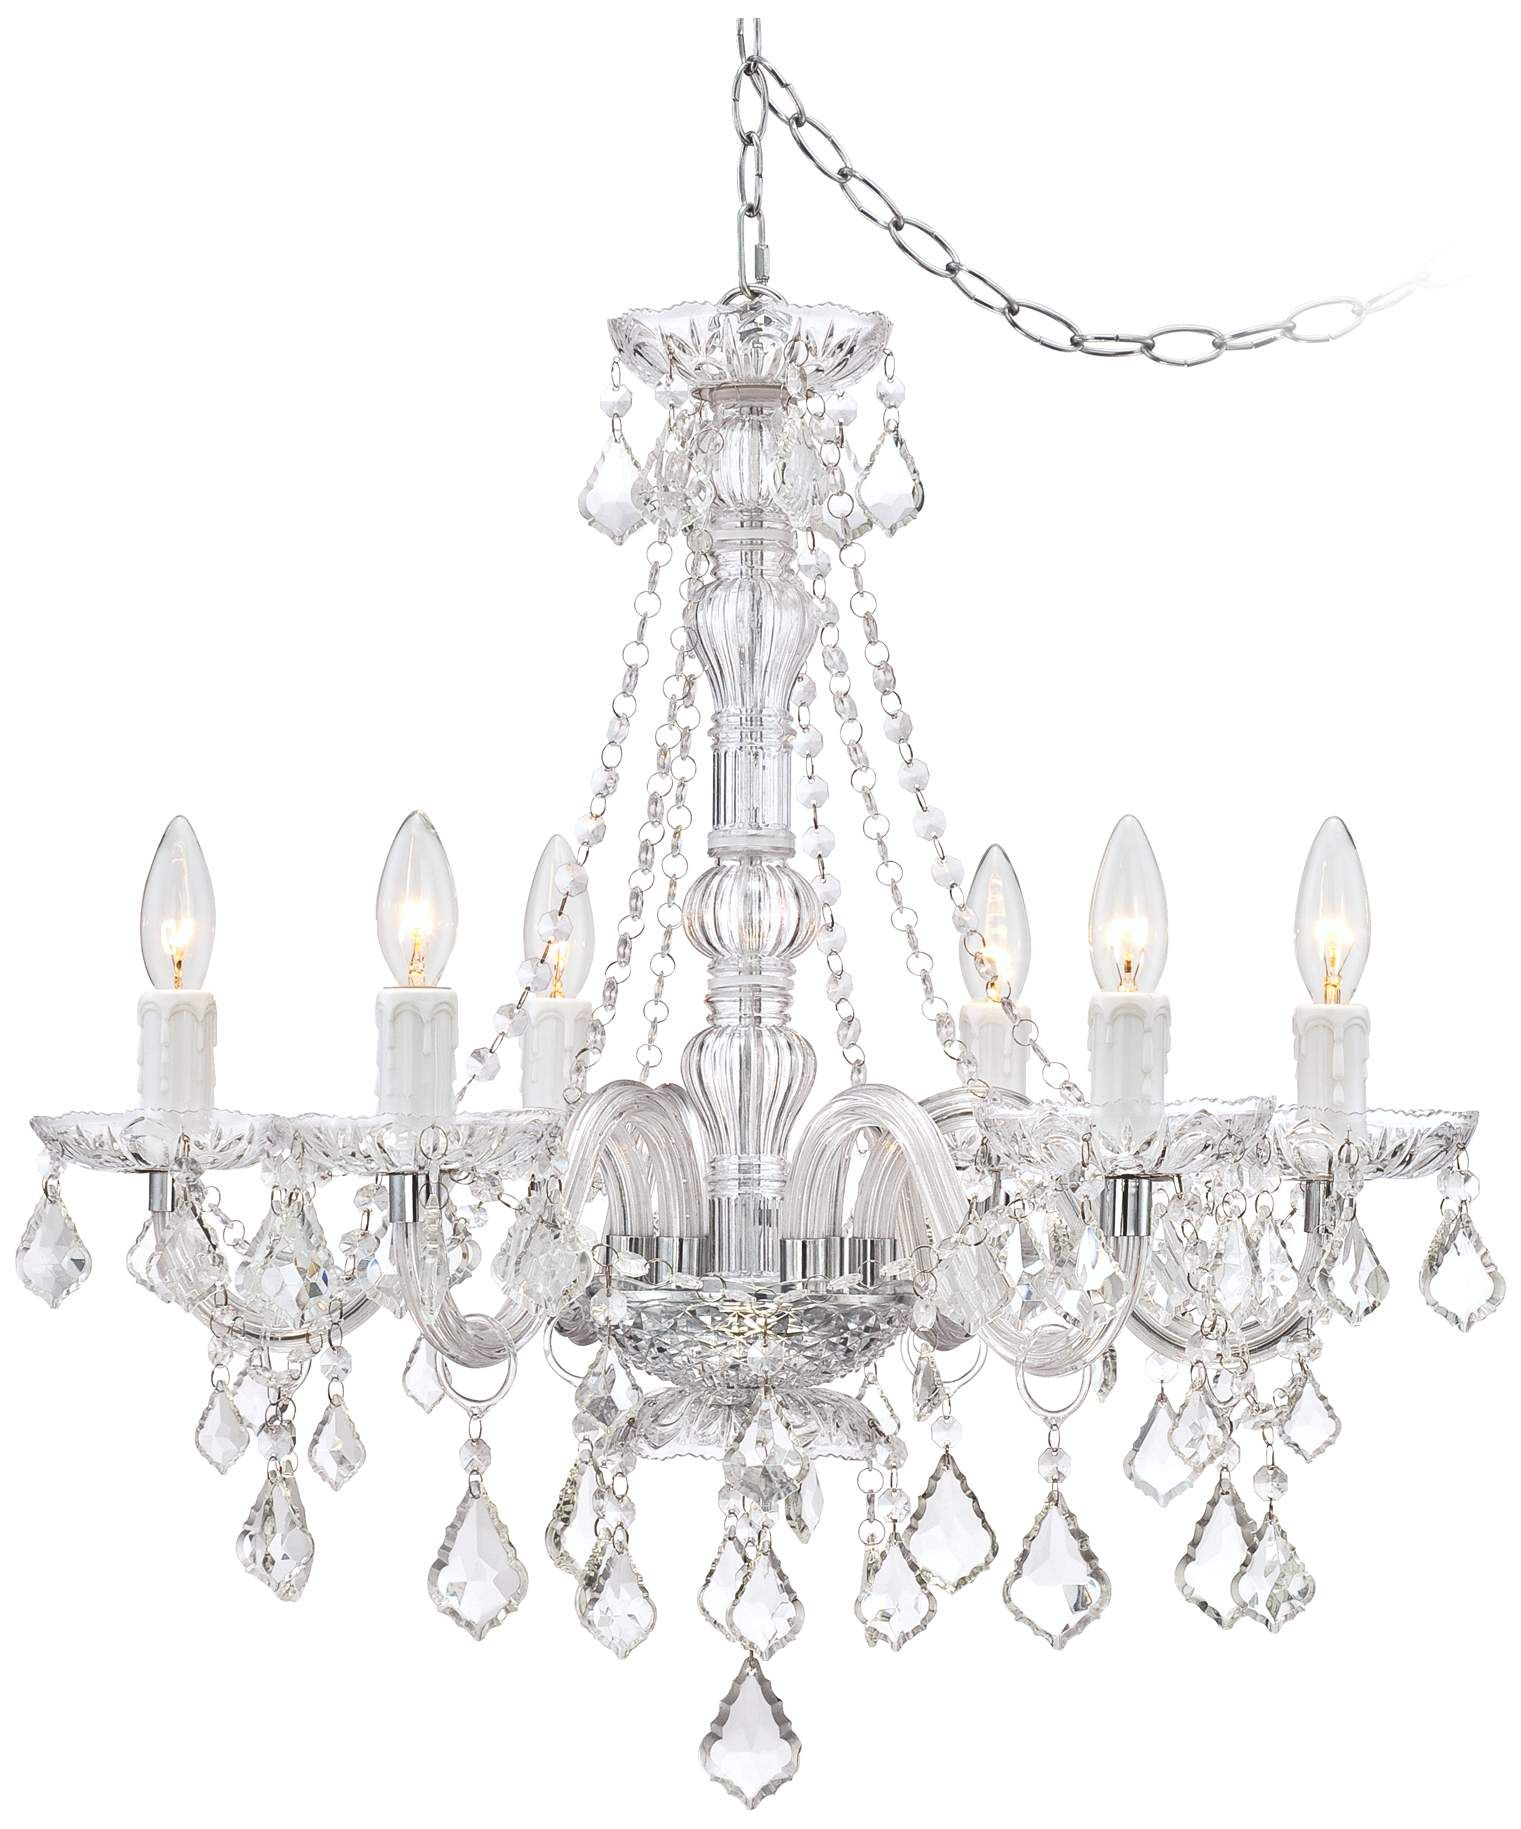 Anibal Clear Glass And Acrylic Plug In Swag Chandelier 8c505 Lampsplus Com Swag Chandelier Acrylic Plugs Chandelier